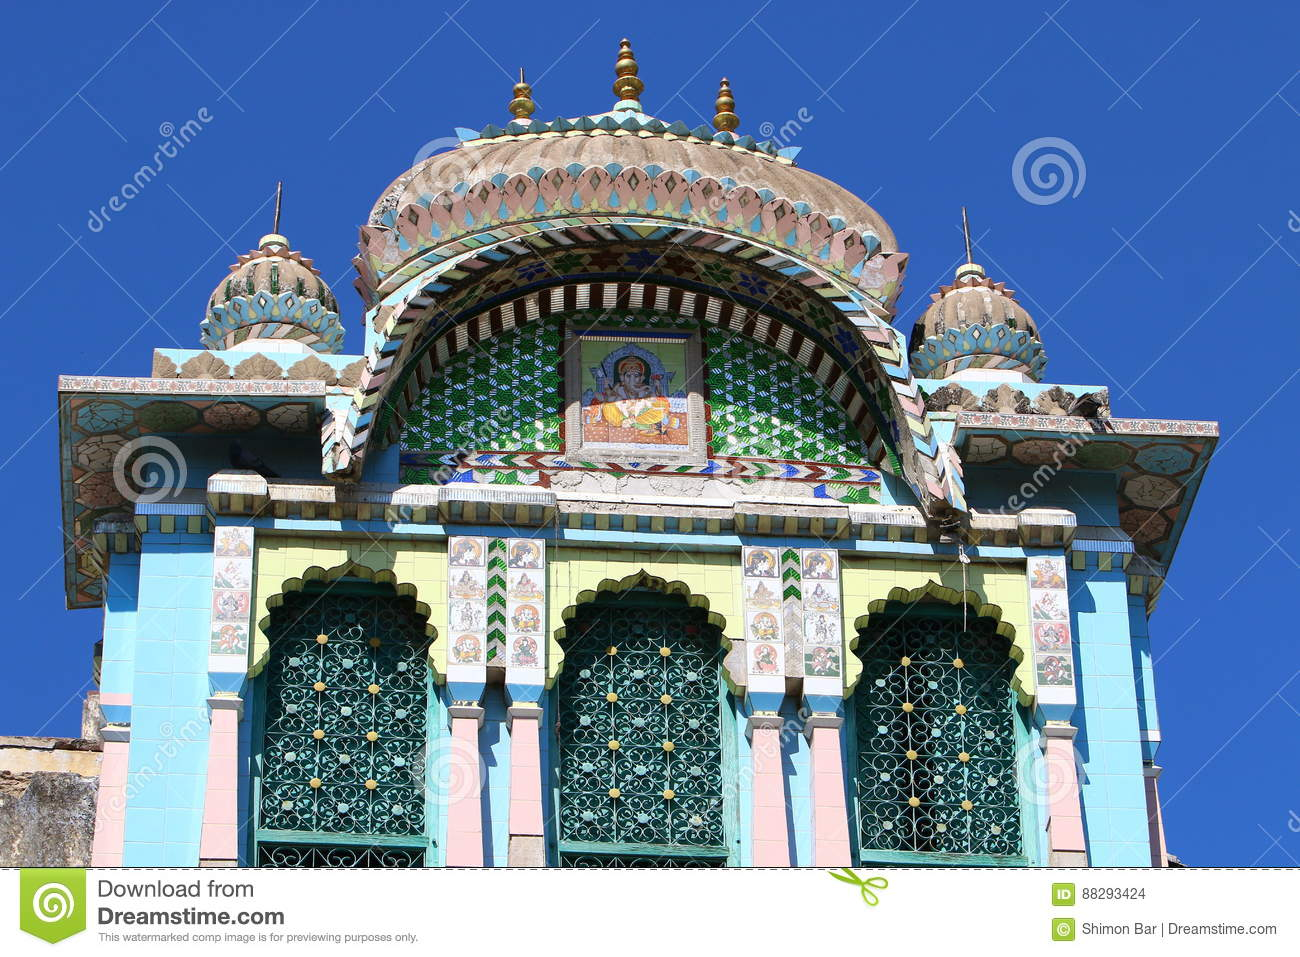 Beautiful buddhist country deep every gods india jain palace significance temple